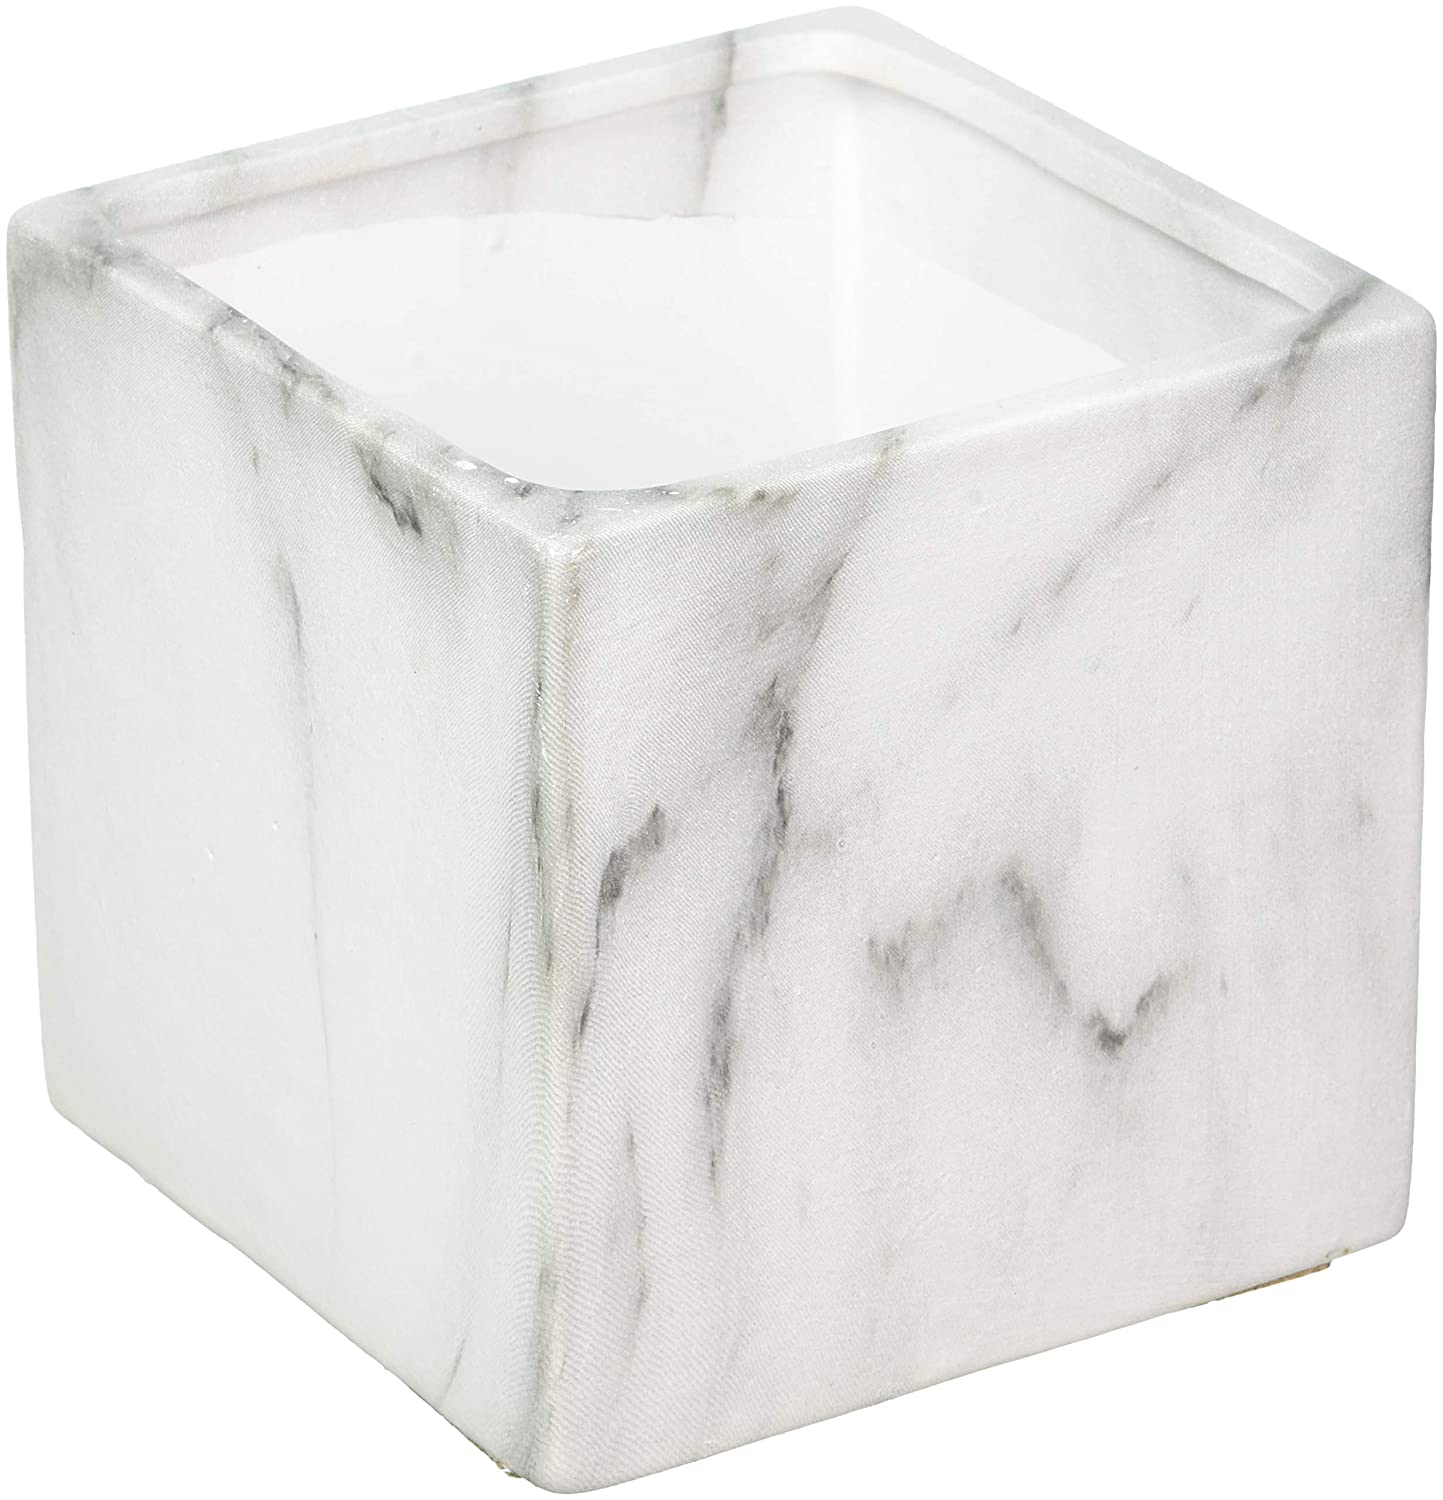 Koyal Wholesale Marble Decor, Black White Marble Effect Square Cube Vase Centerpiece for Marble Wedding, 4-Pack, Mable Home Decor, Marble Desk Accessories (4-Inch)